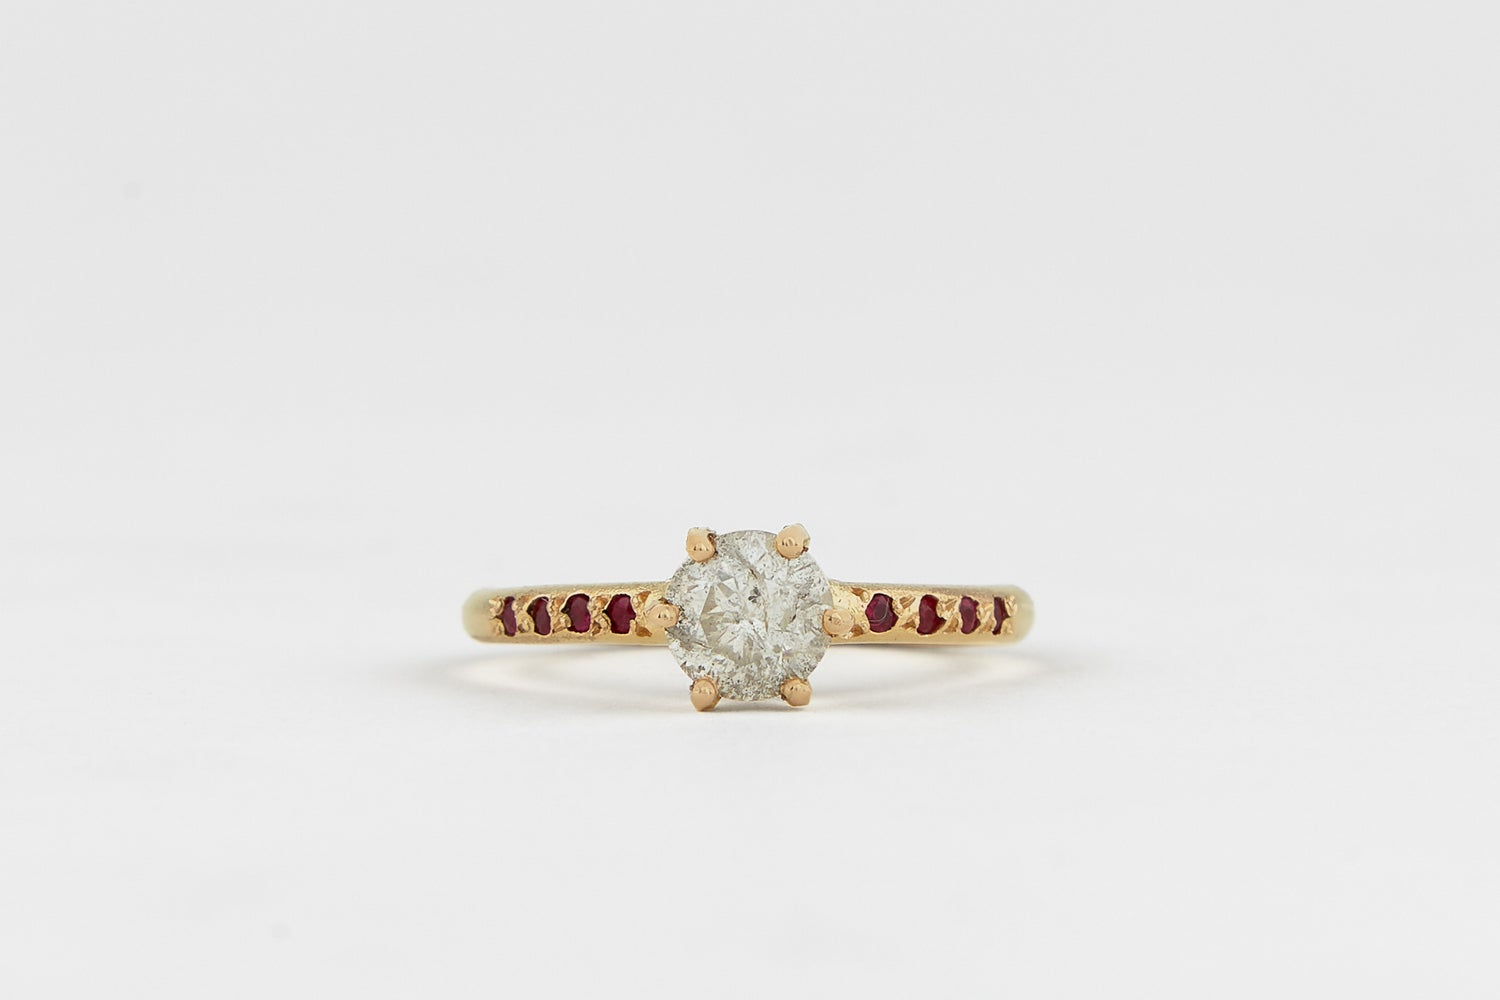 Image of Salt and Pepper Solitaire ring